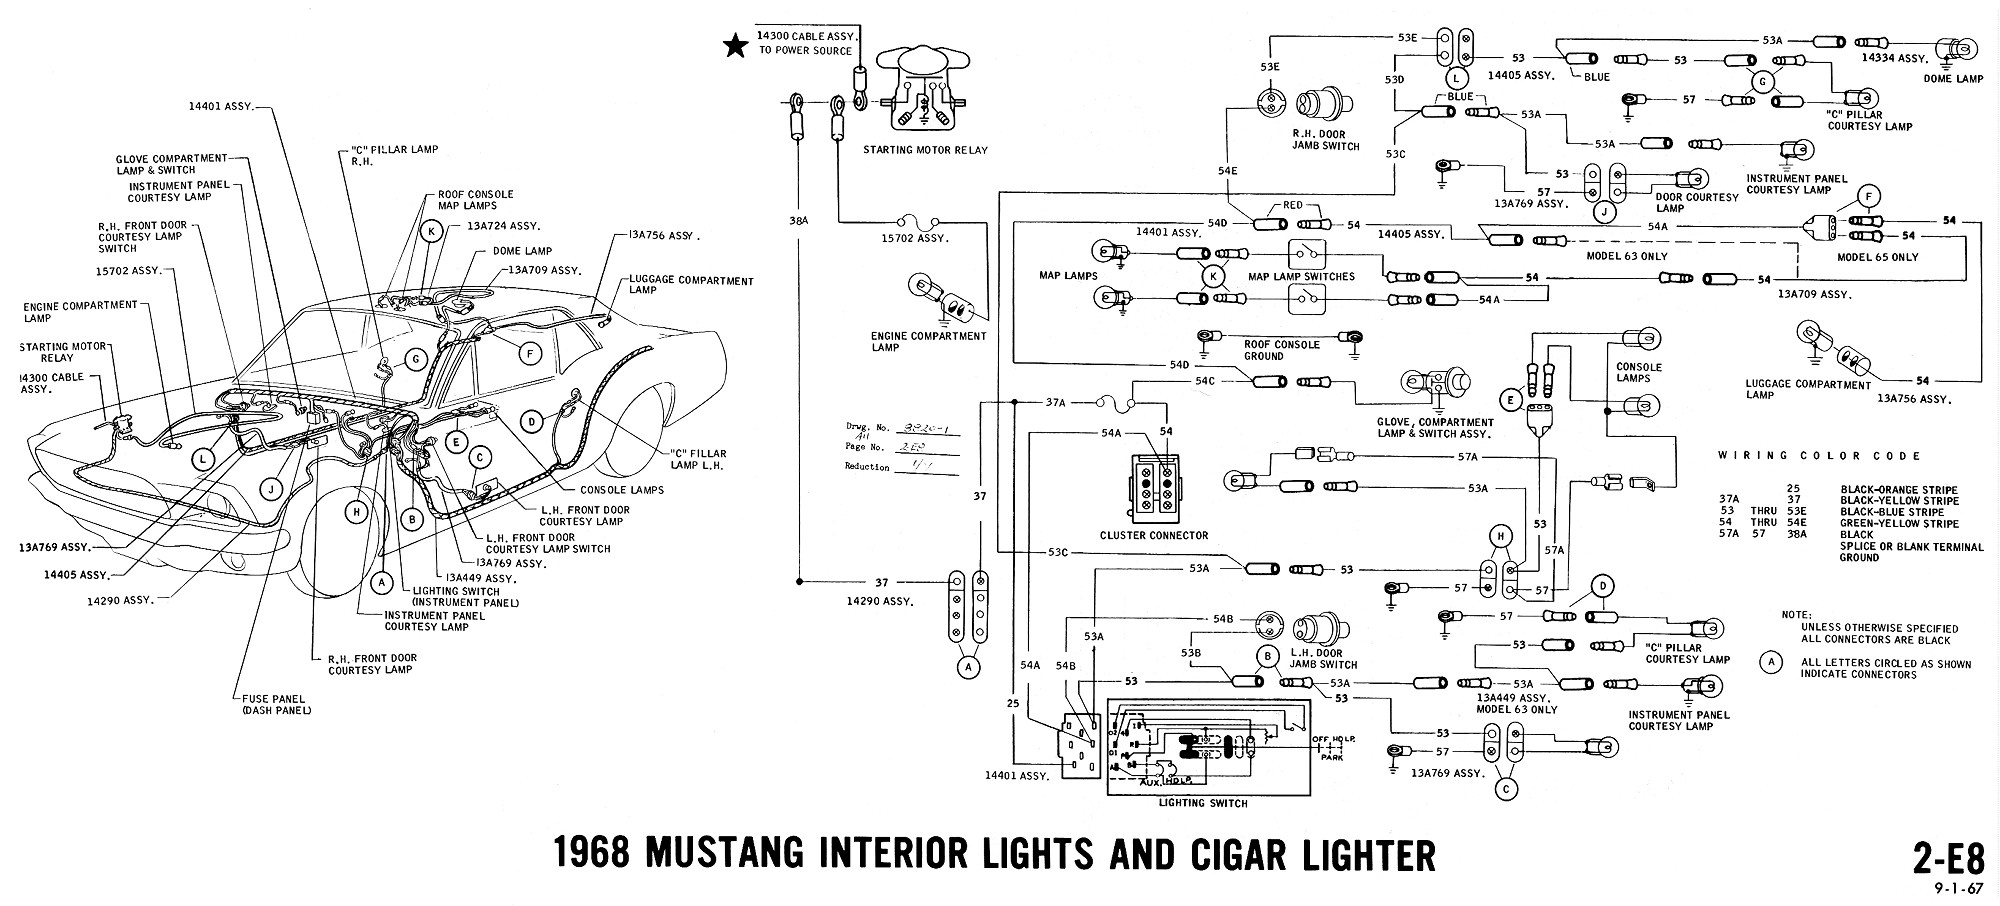 Mustang Wiring Diagram Interior Lights Cigar Lighter